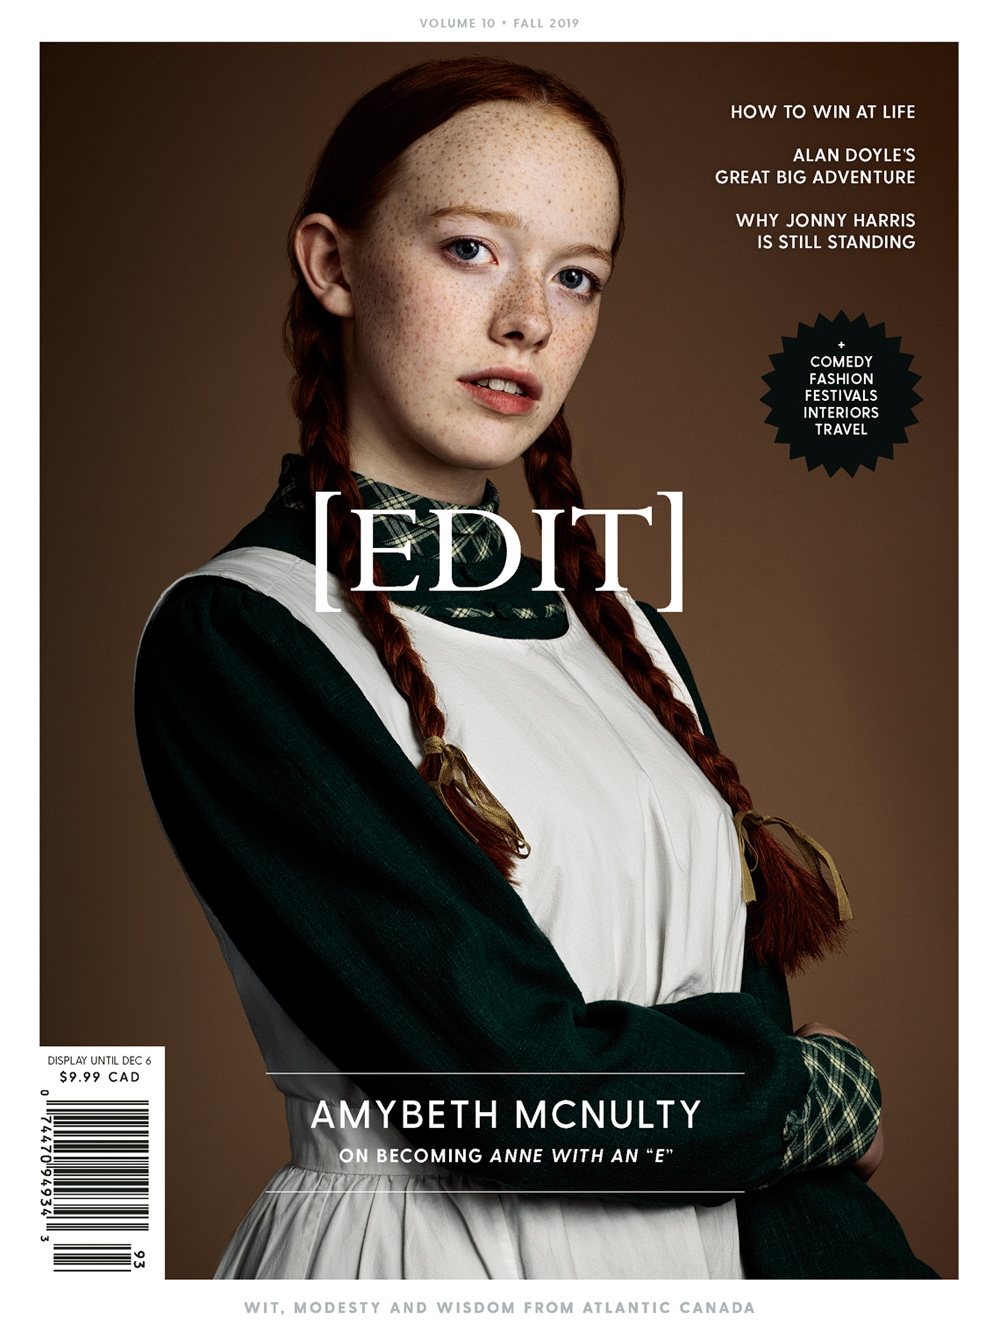 M_EDIT_ISSUE10fall2019_ANNE-1